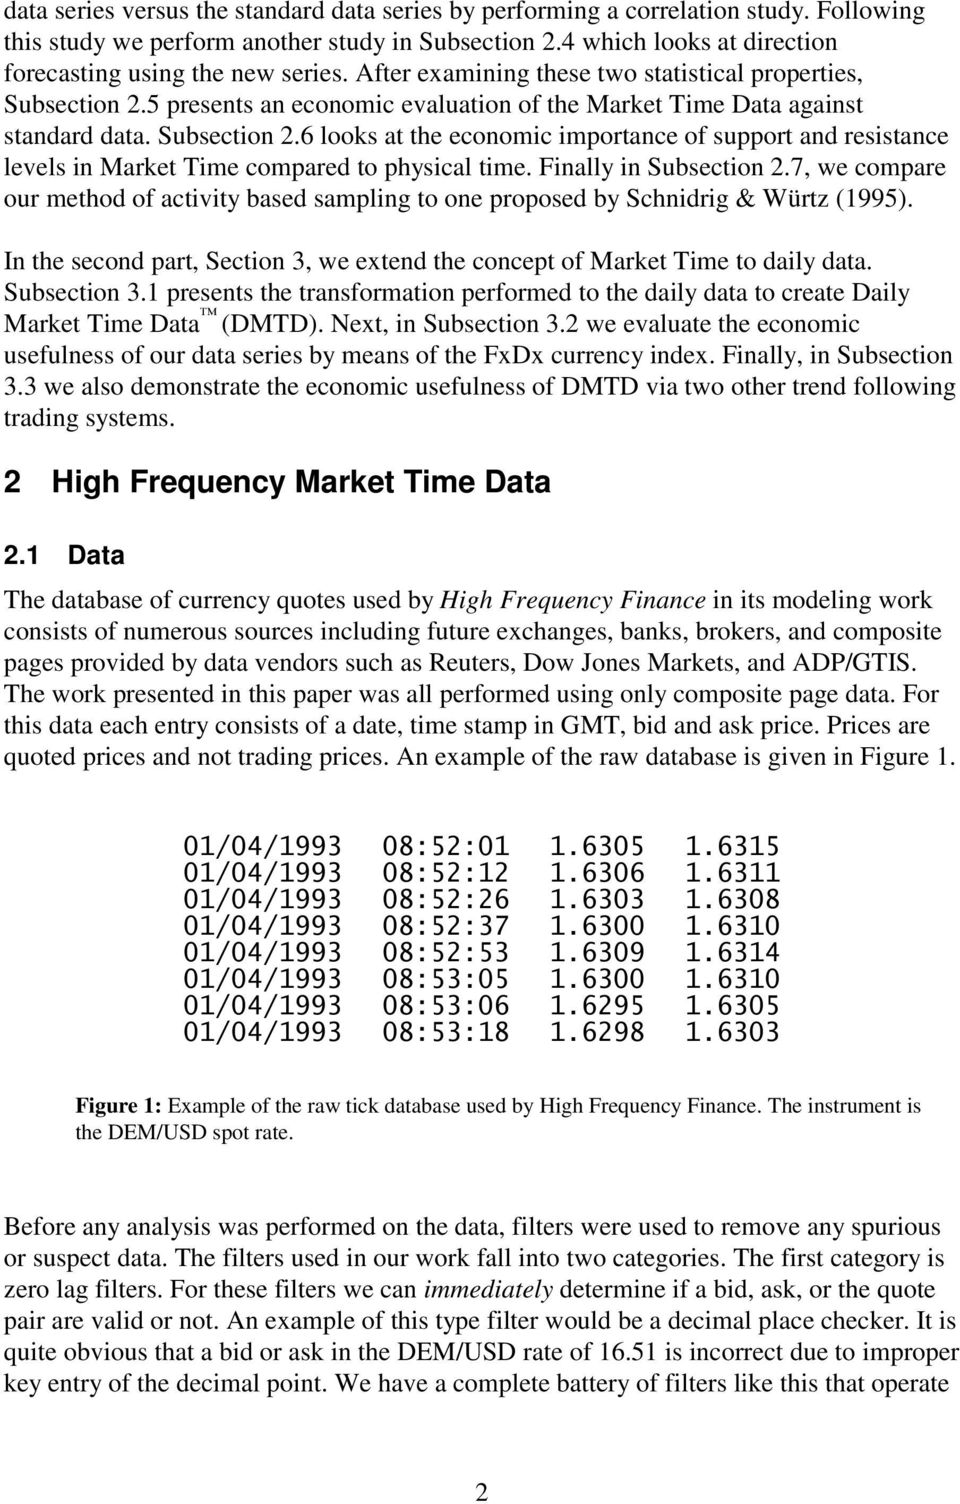 Market Time Data Improving Technical Analysis and Technical Trading